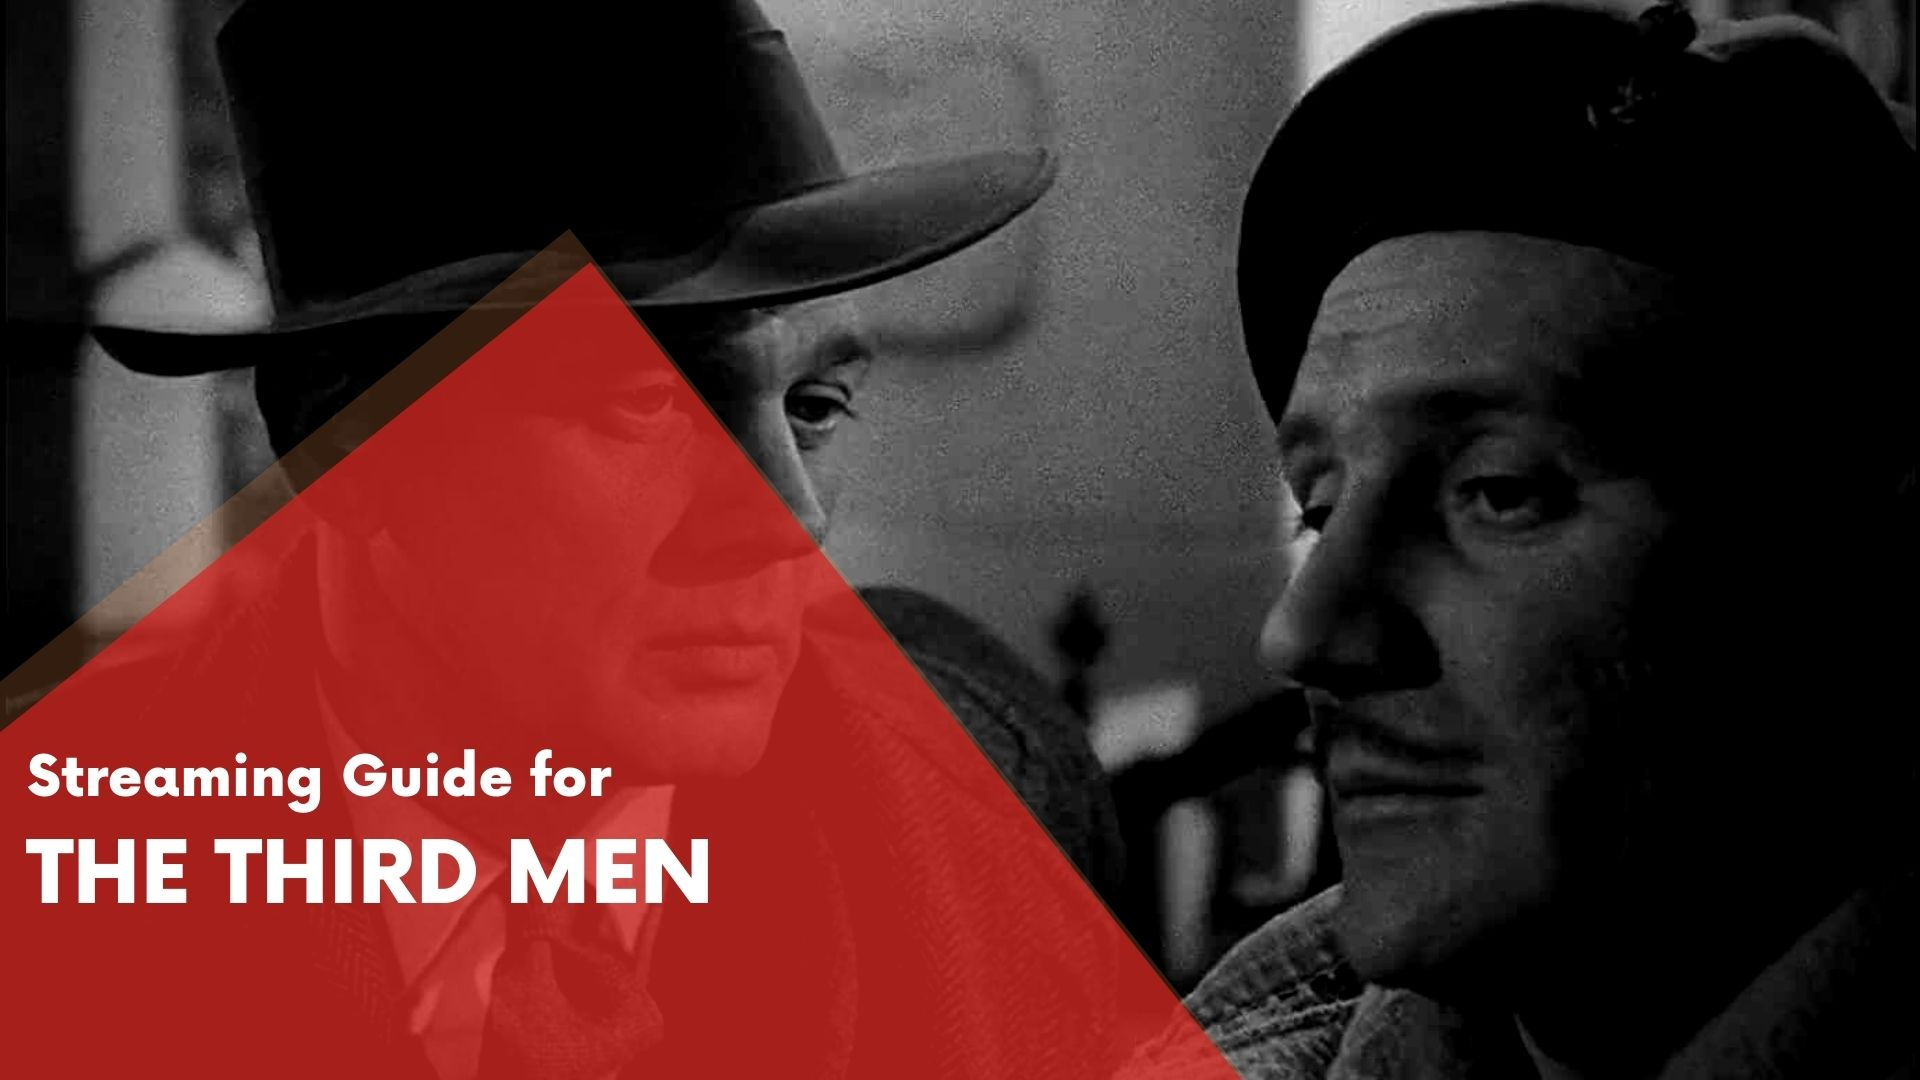 Answering if The Third Men Can be streamed on Hulu